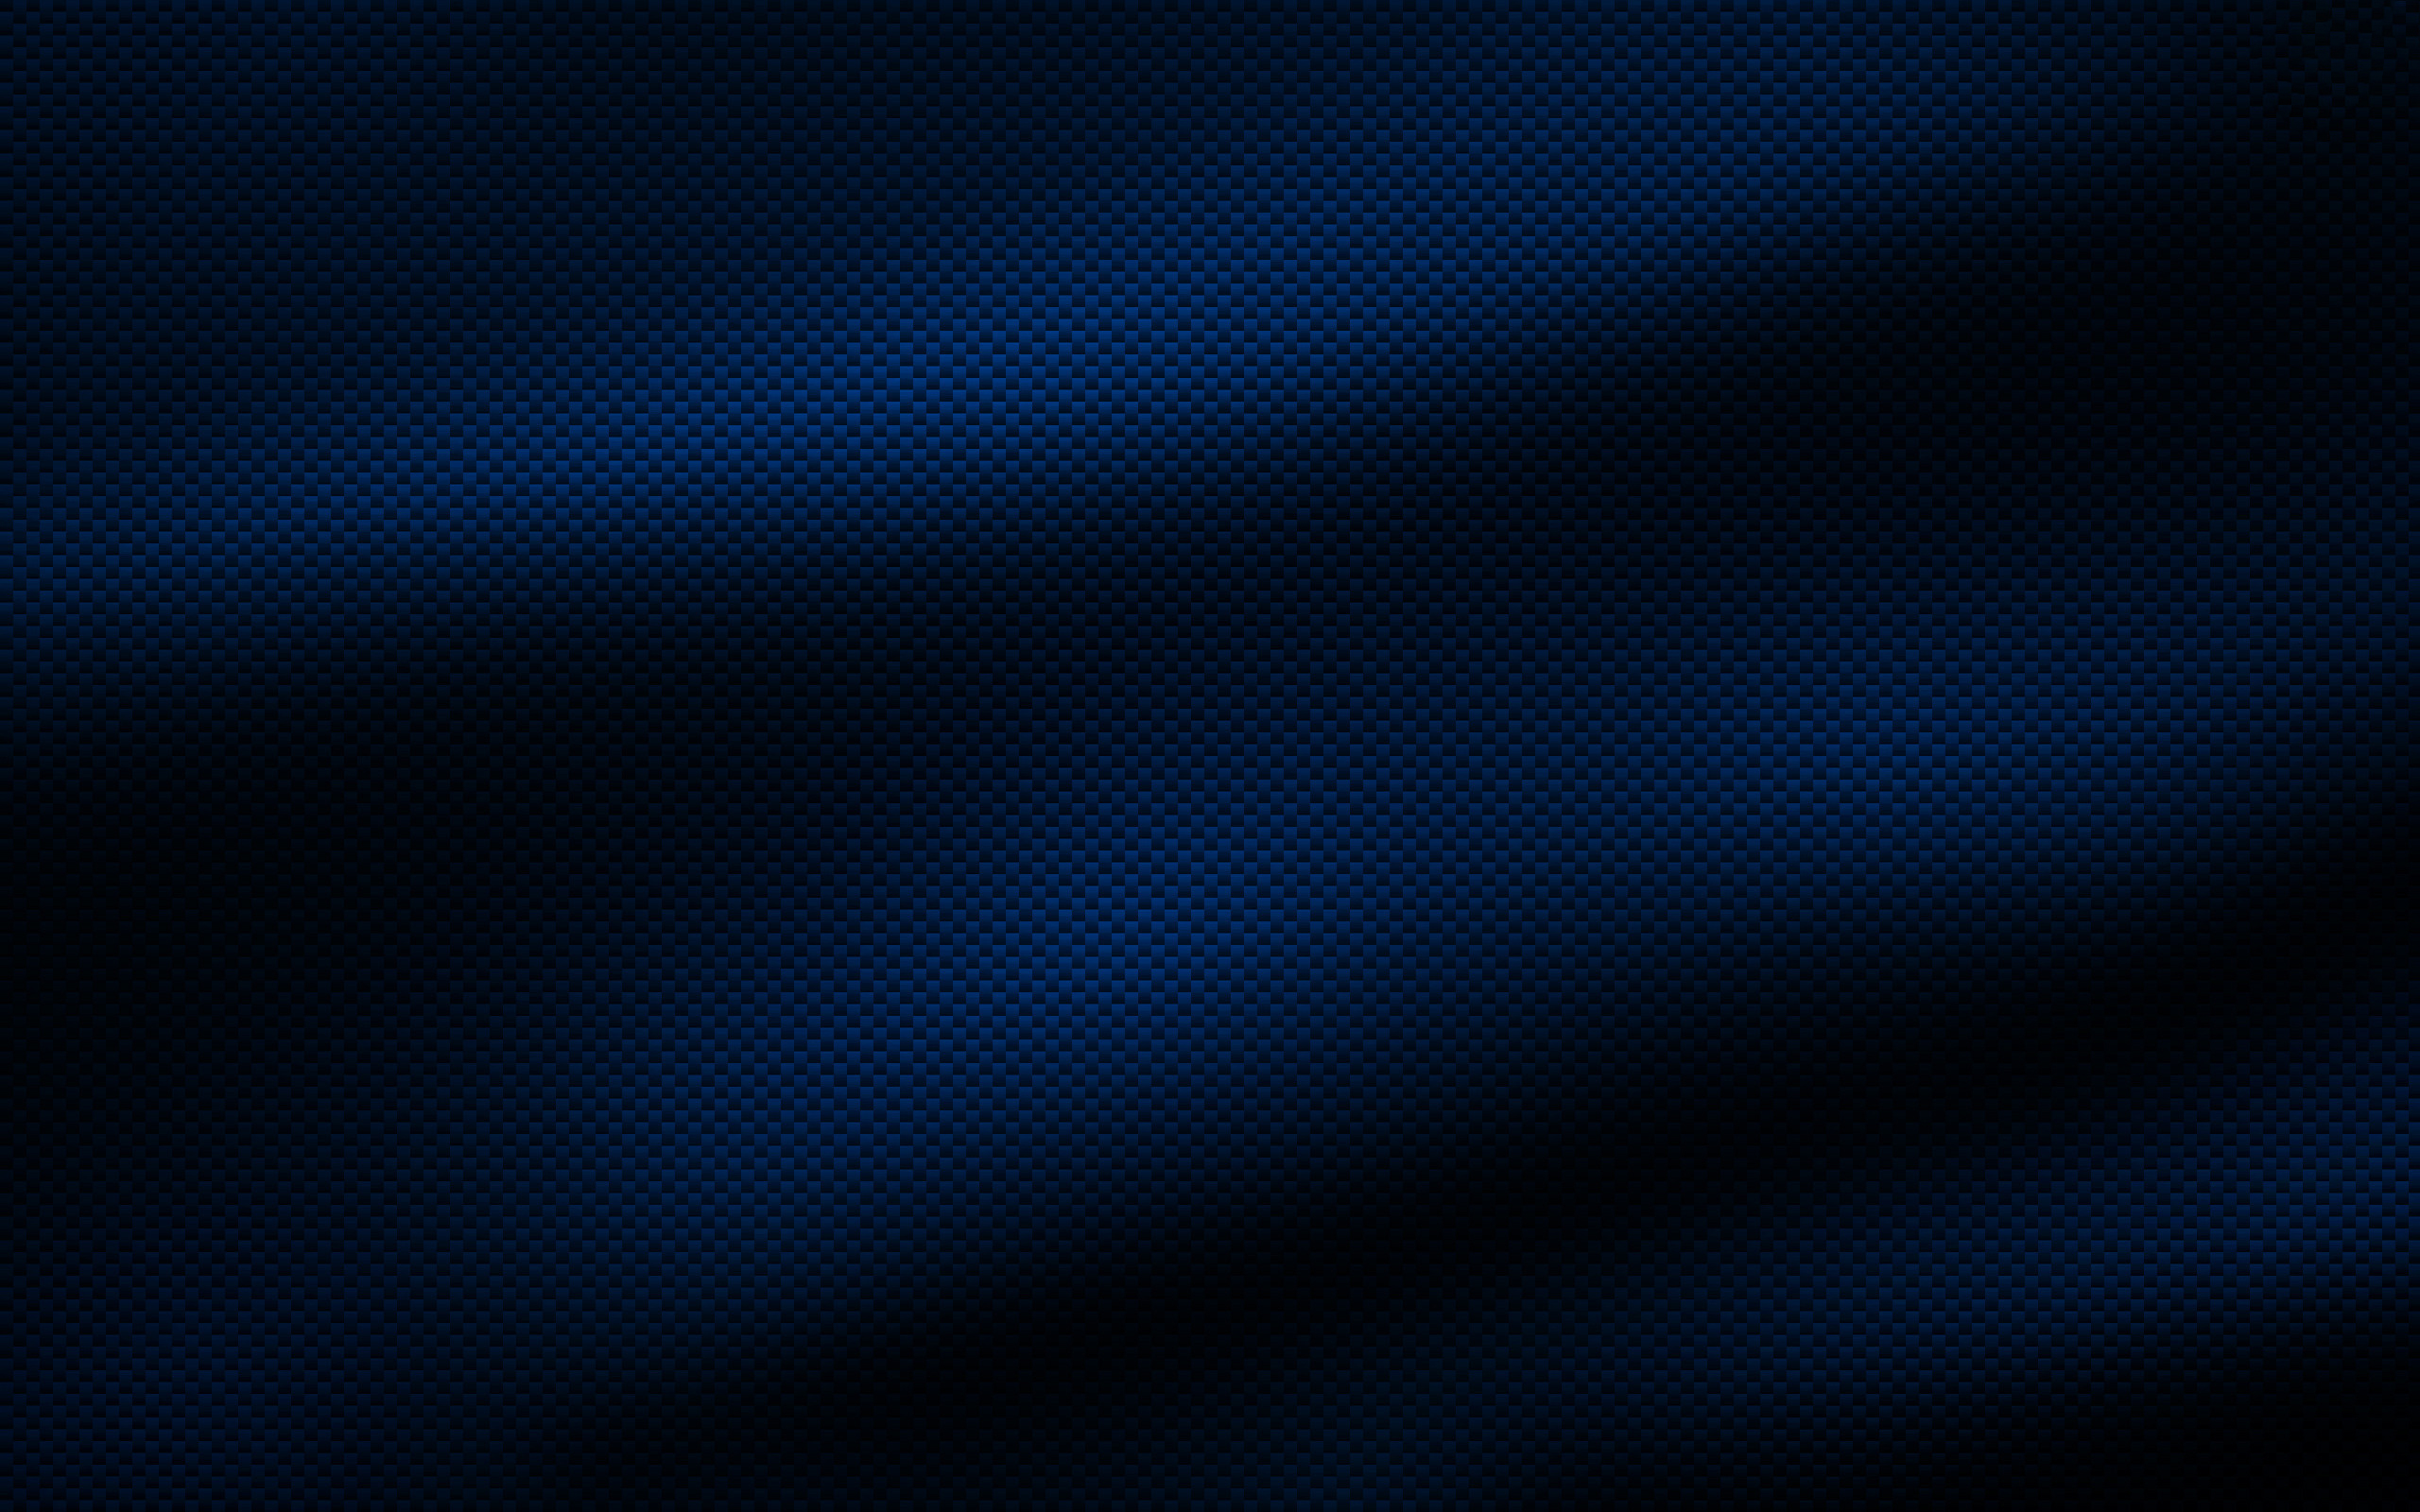 Hd Live Wallpapers For Iphone 7 Blue Carbon Fiber Wallpaper 41563 2560x1600 Px